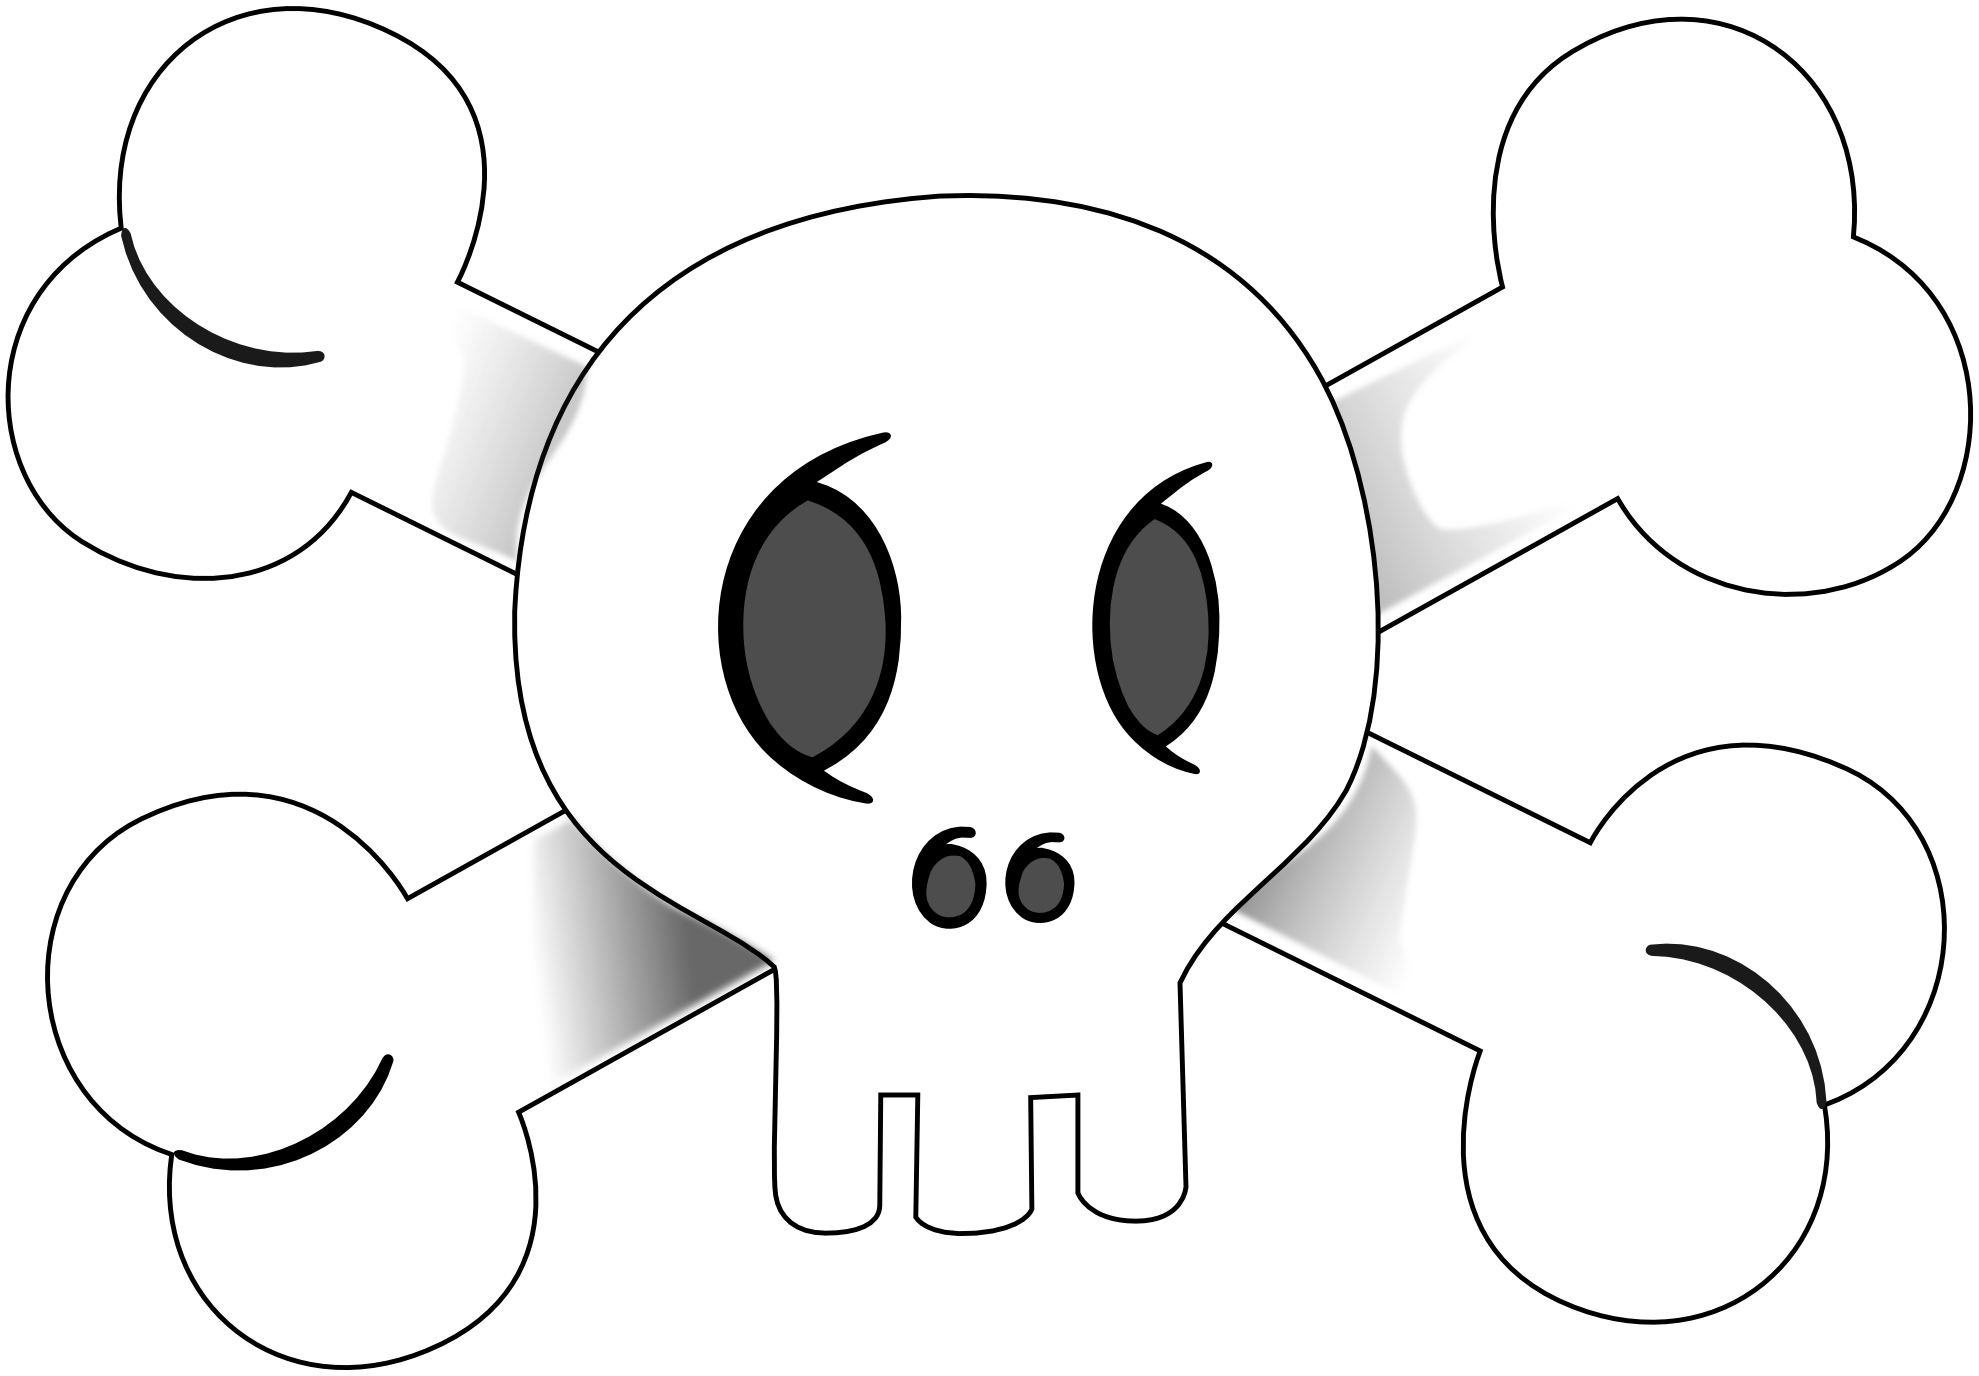 Pirate Flag Clipart Black And White | Clipart Panda - Free Clipart ...